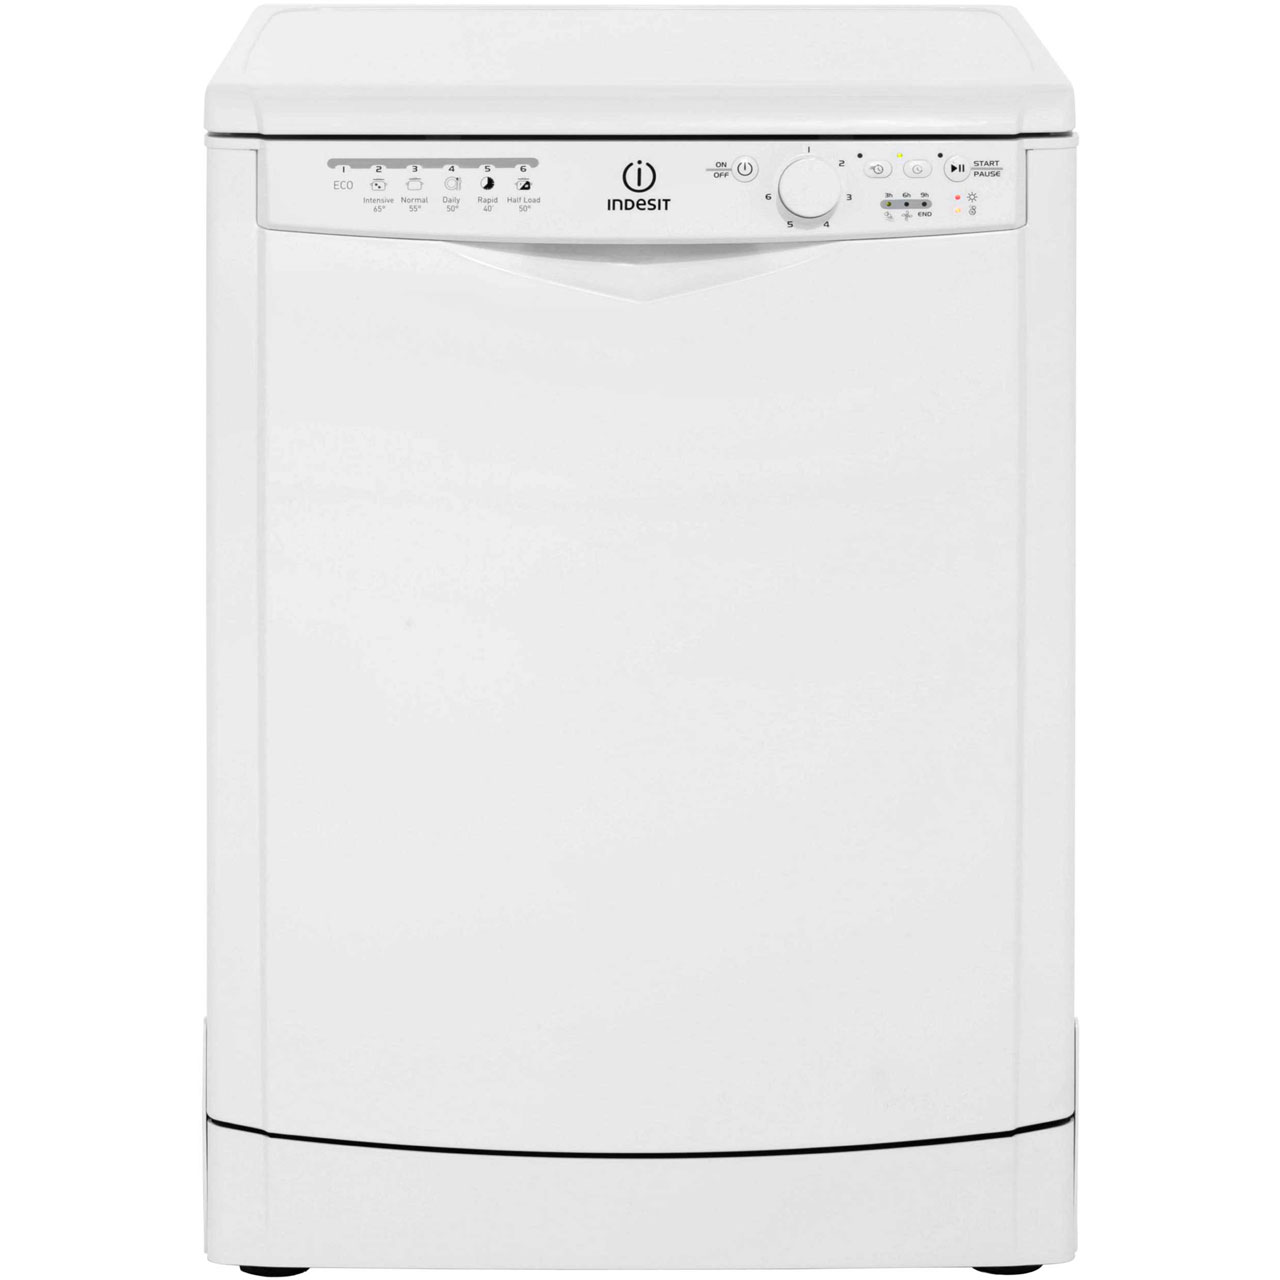 Indesit My Time DFG26B1 Free Standing Dishwasher in White